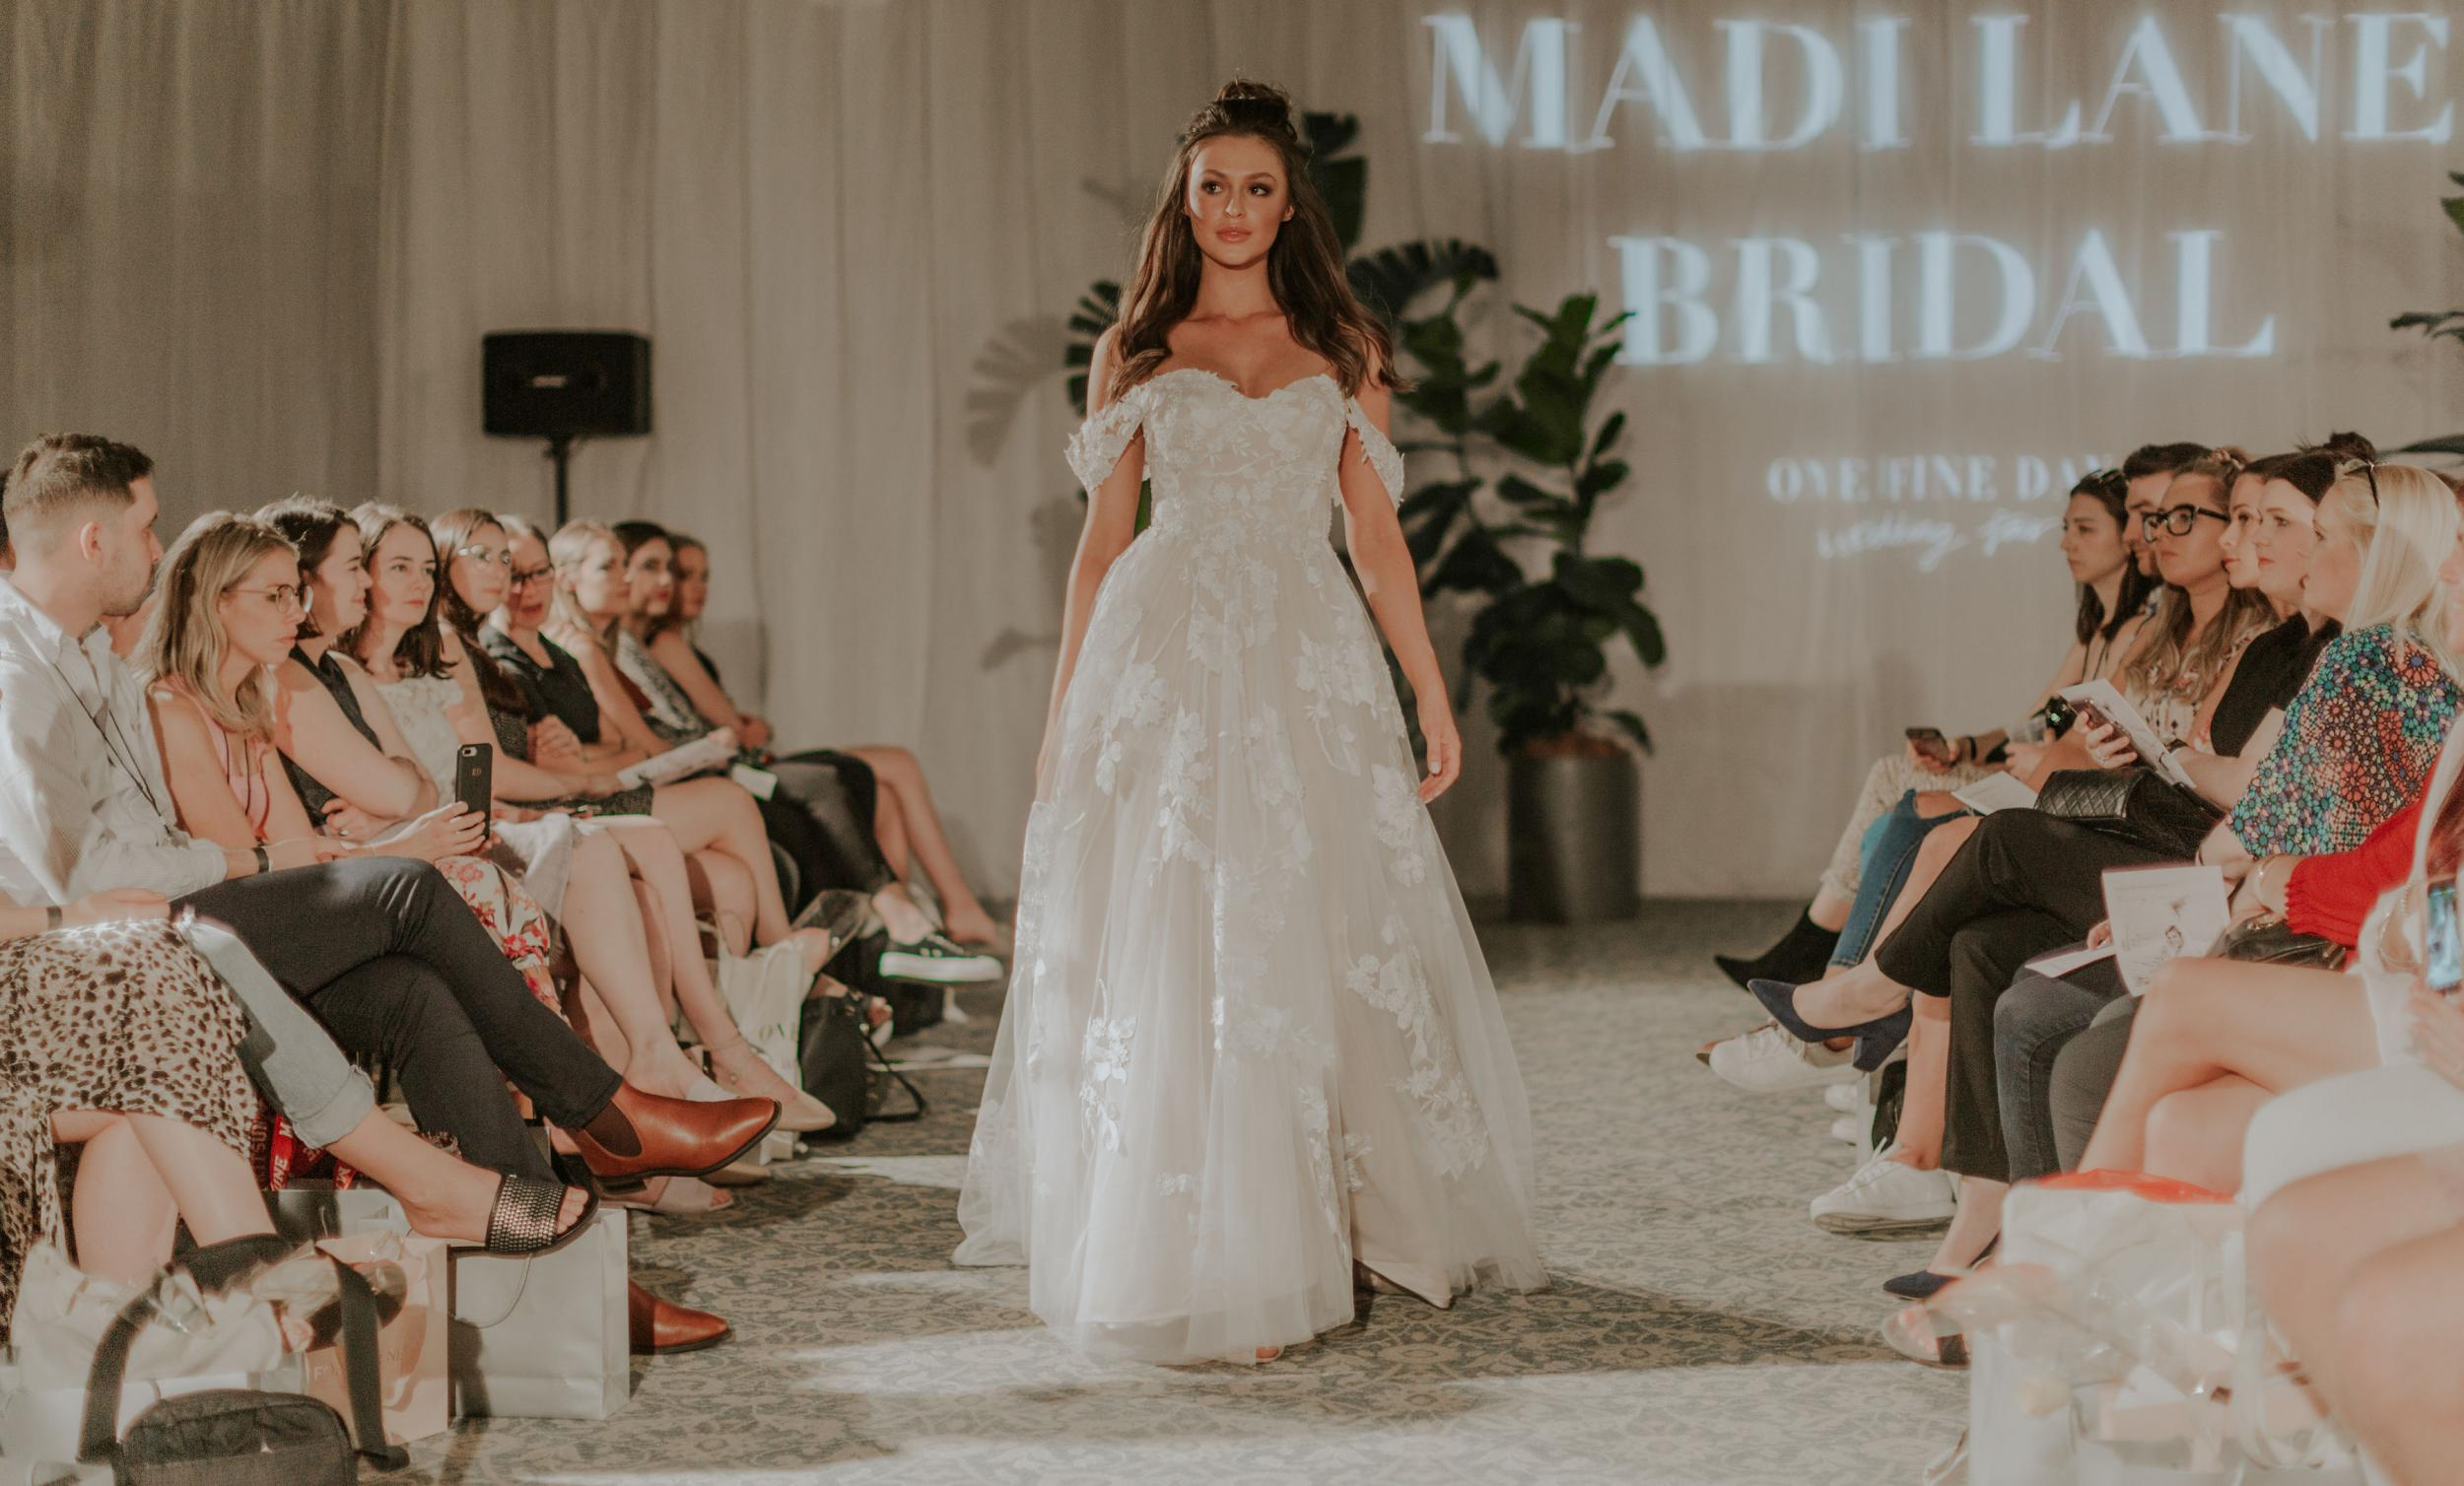 ONE FINE DAY X MADI LANE BRIDAL